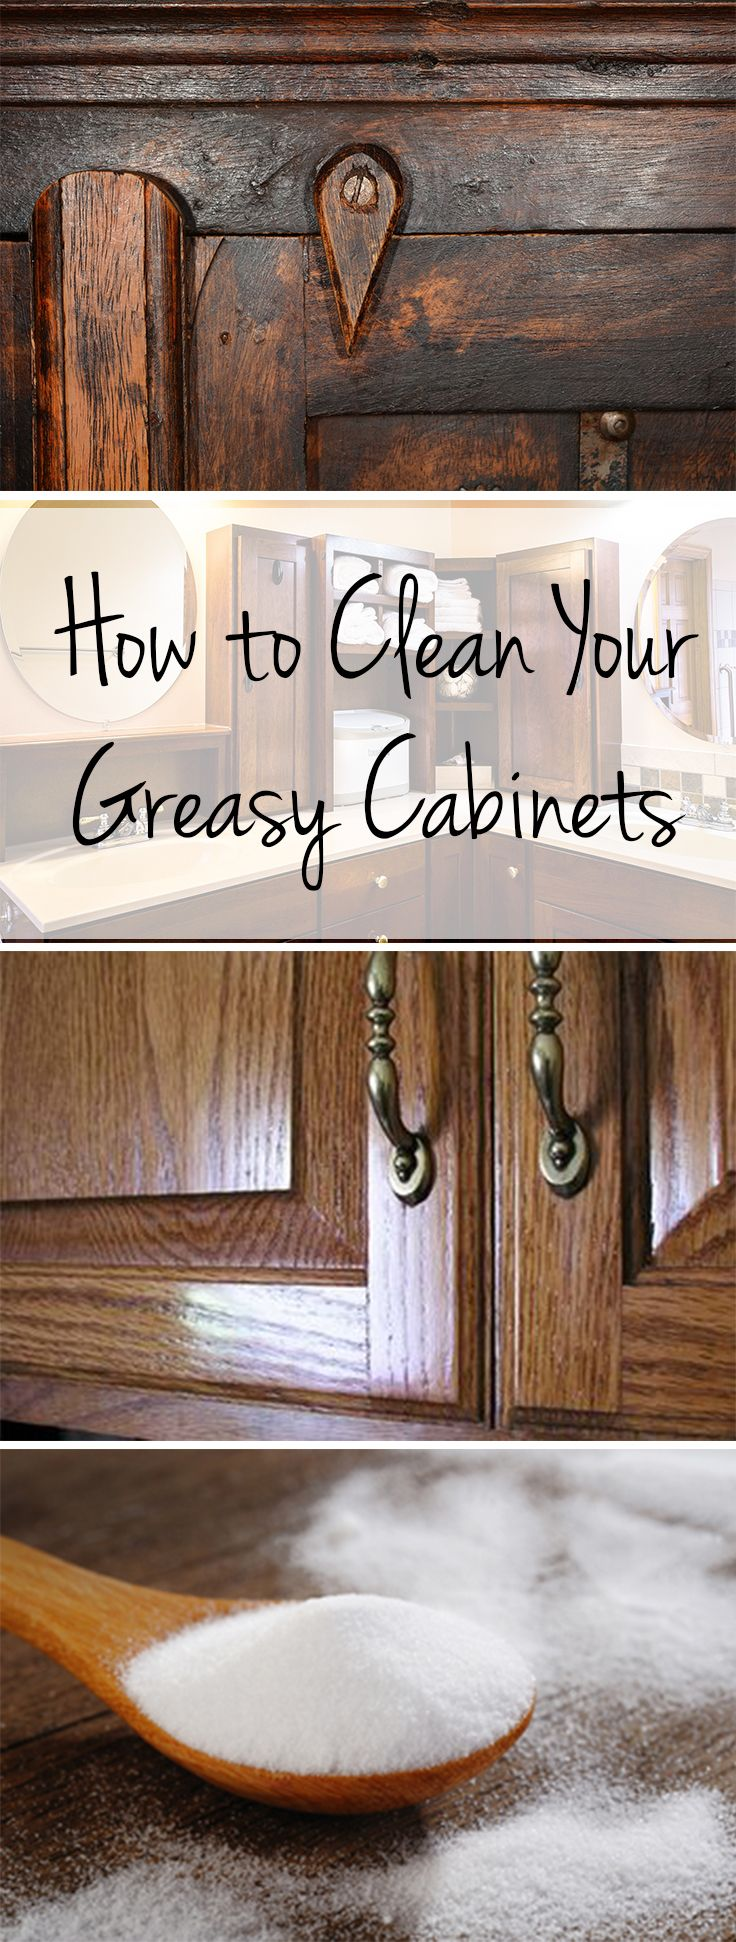 Best 25+ Cleaning kitchen cabinets ideas on Pinterest